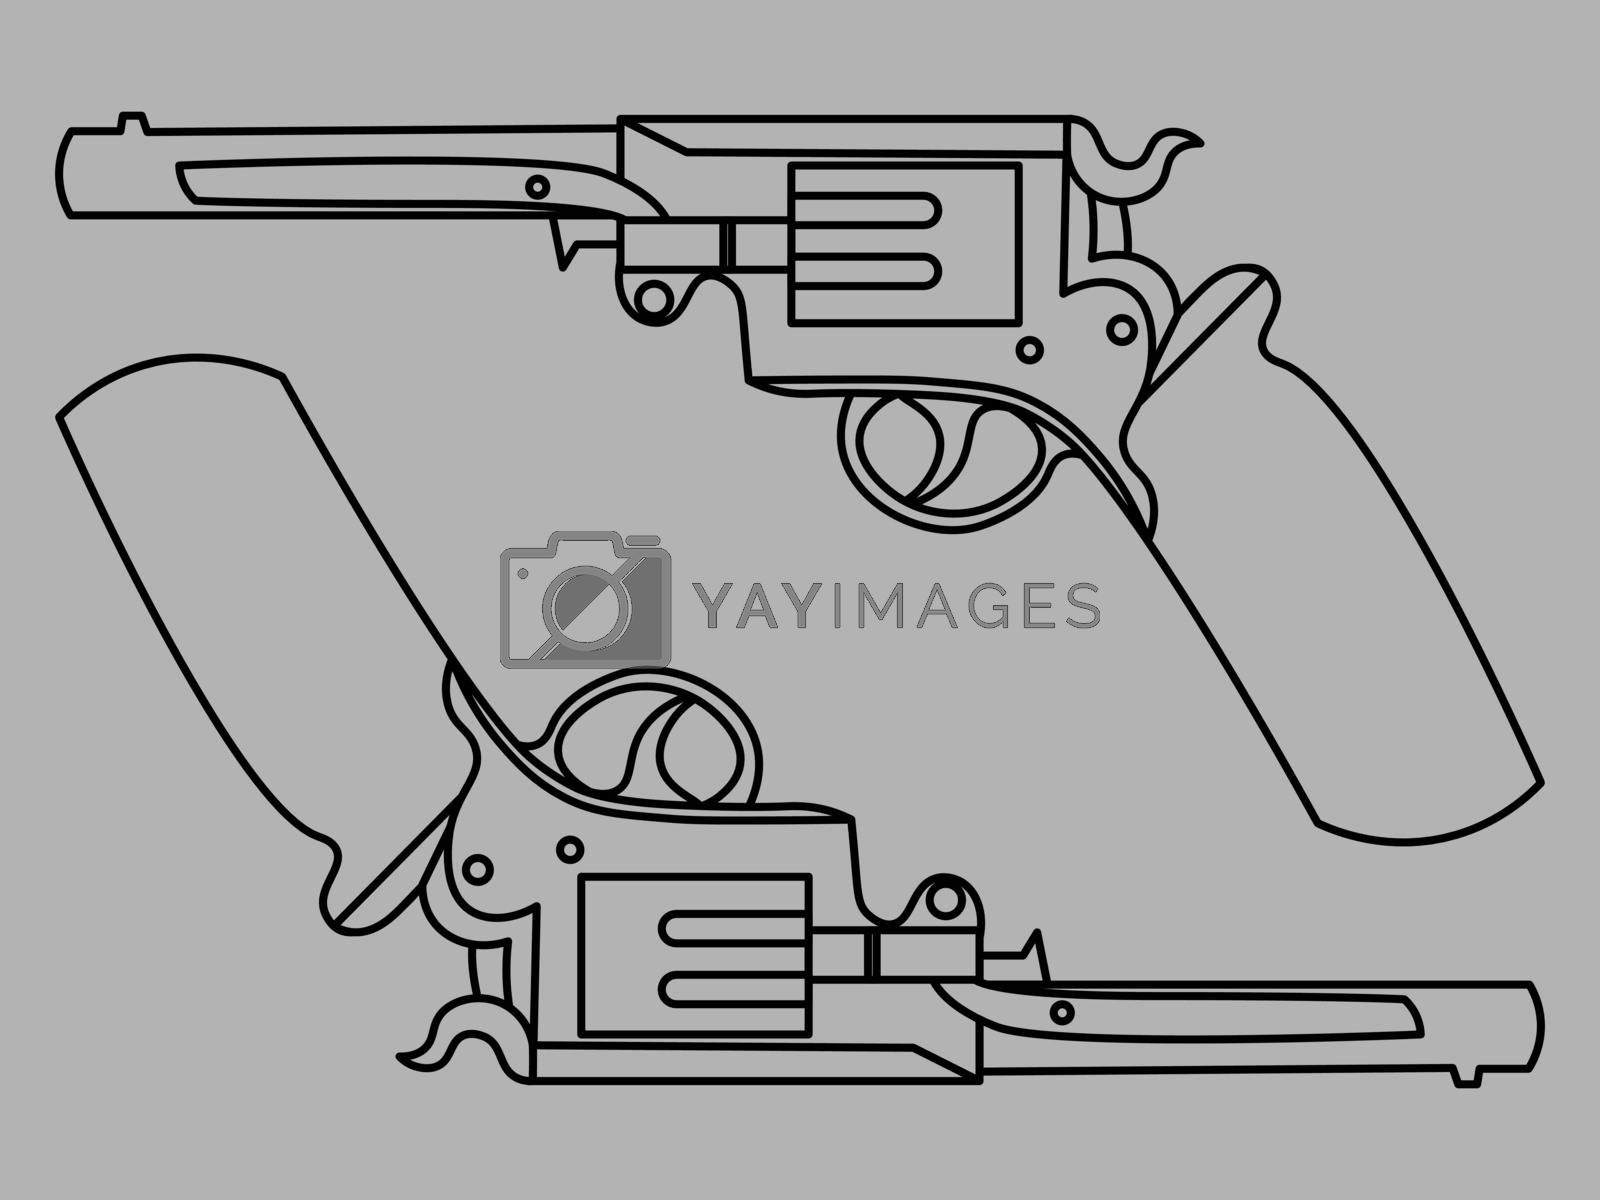 minimal line art of two vintage revolvers on grey background